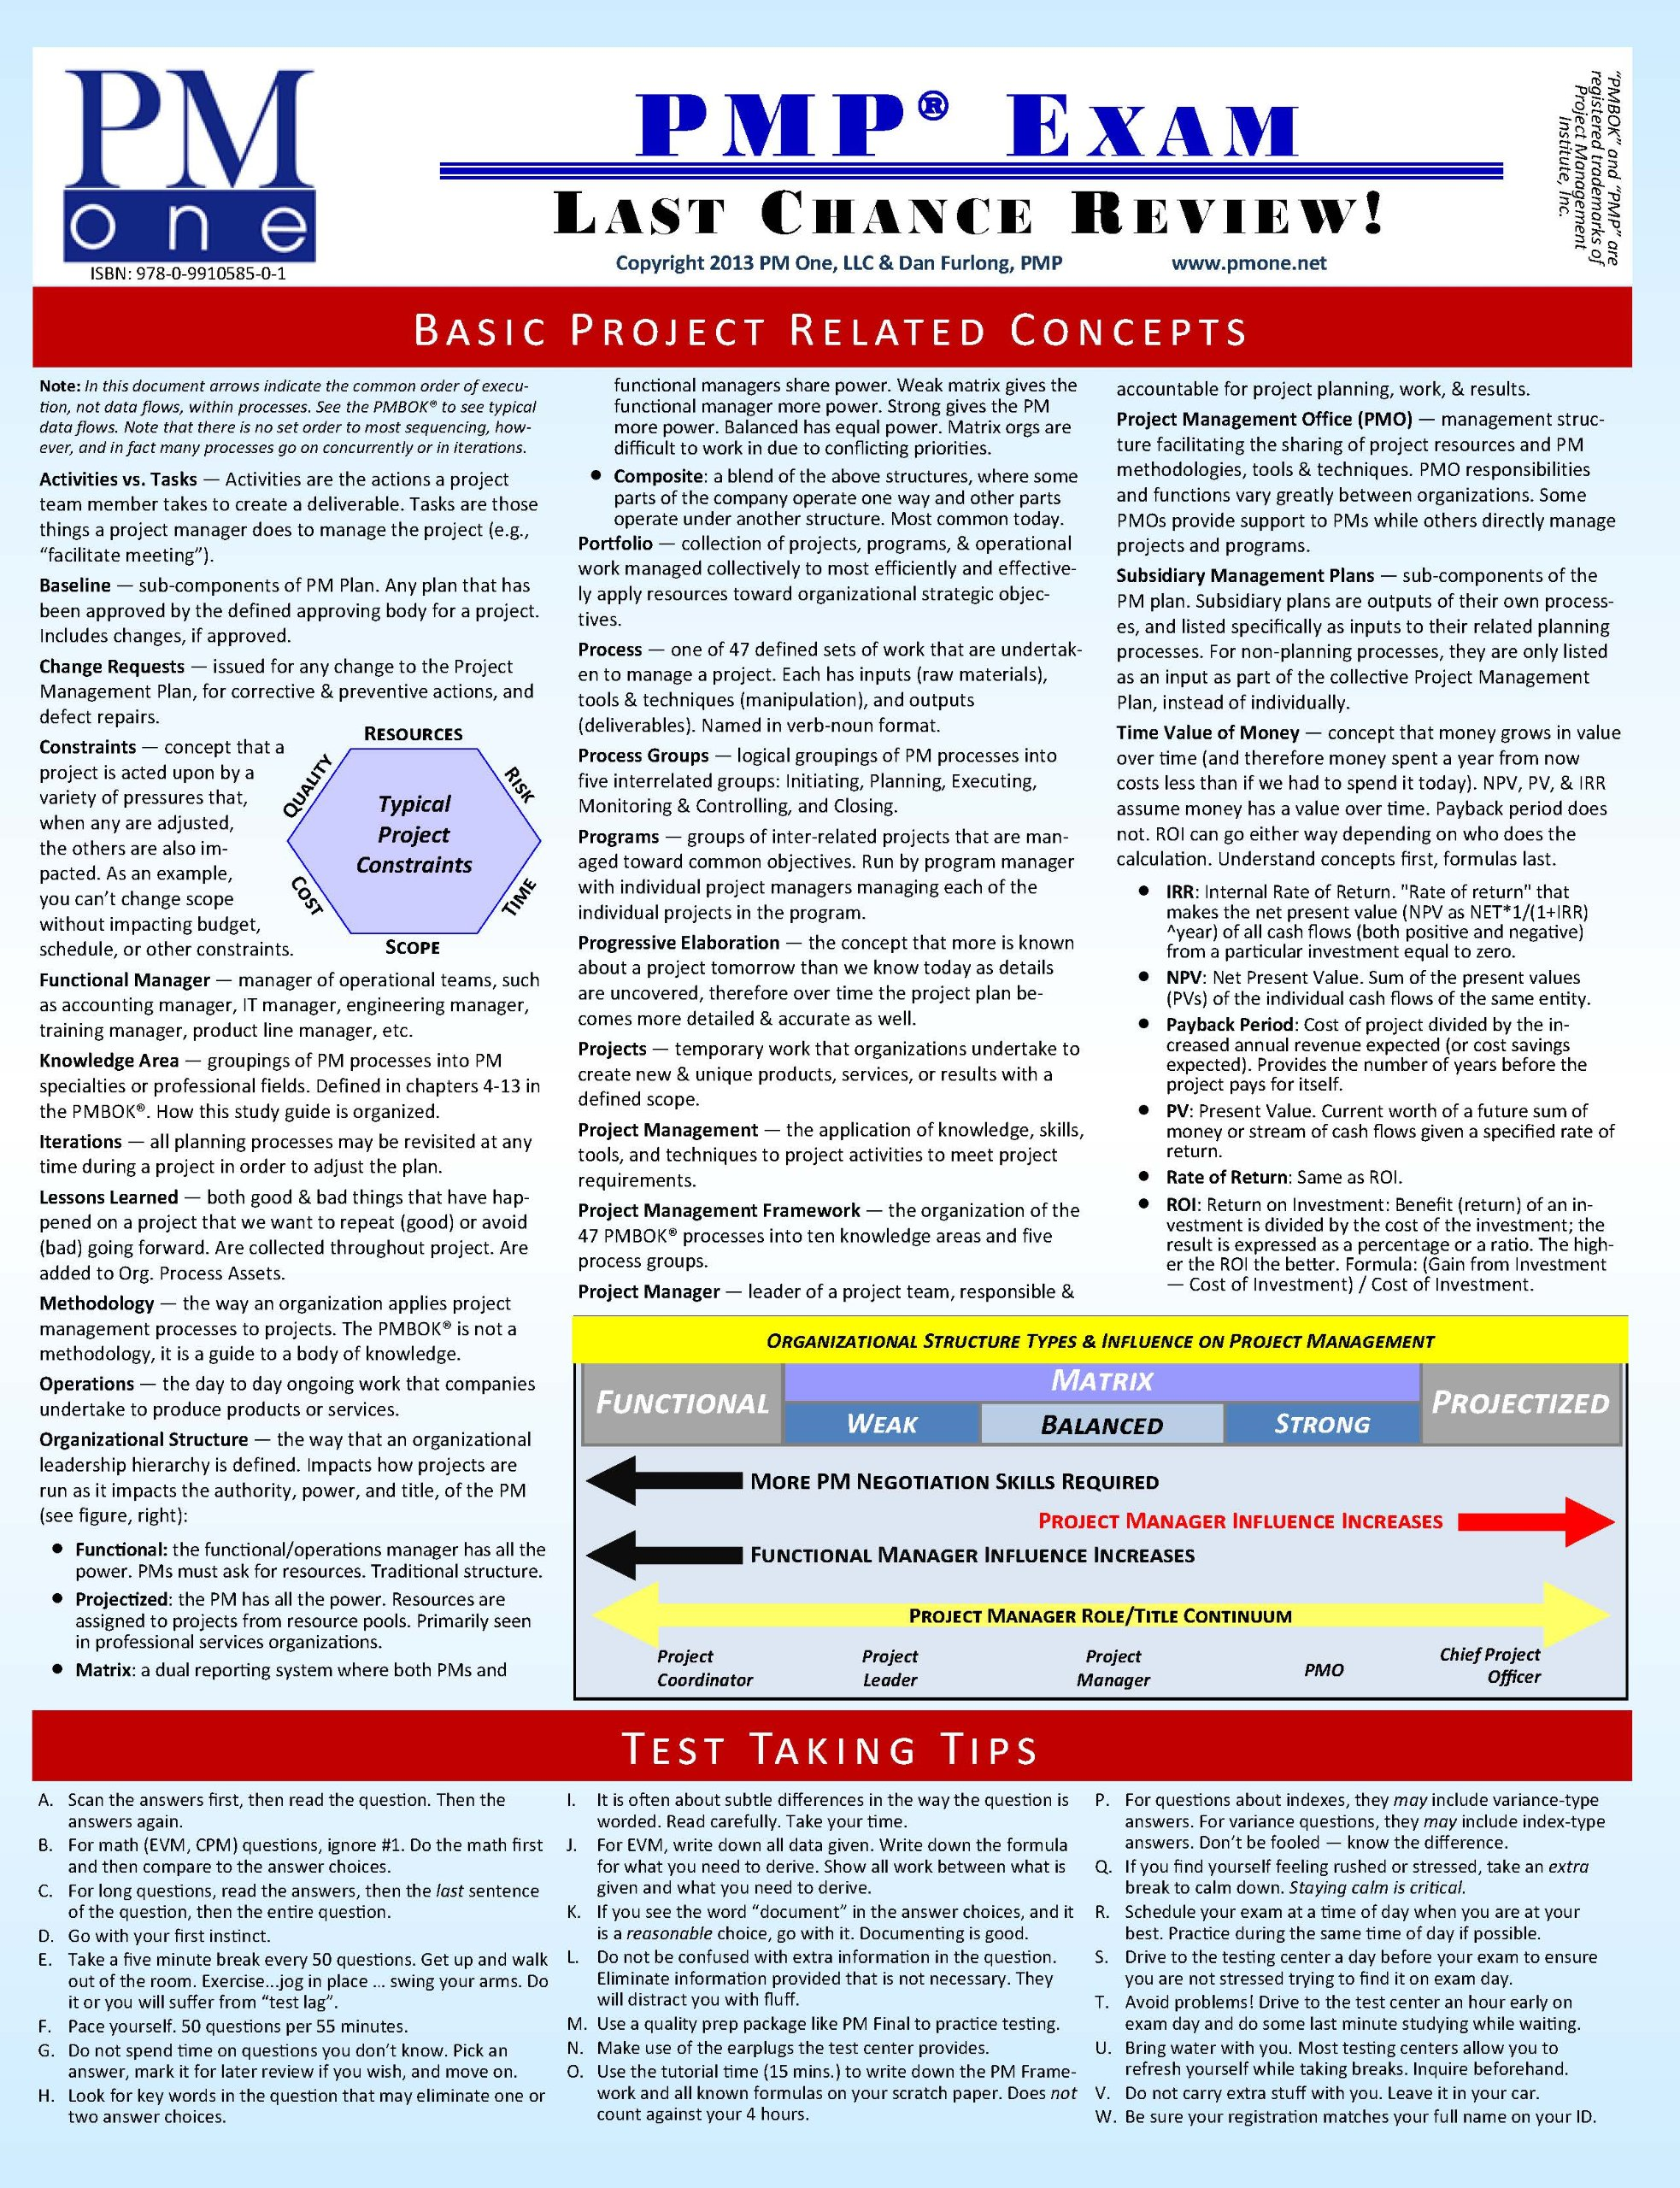 Pmp Exam Last Chance Review Pmp Quick Reference Poster Dan